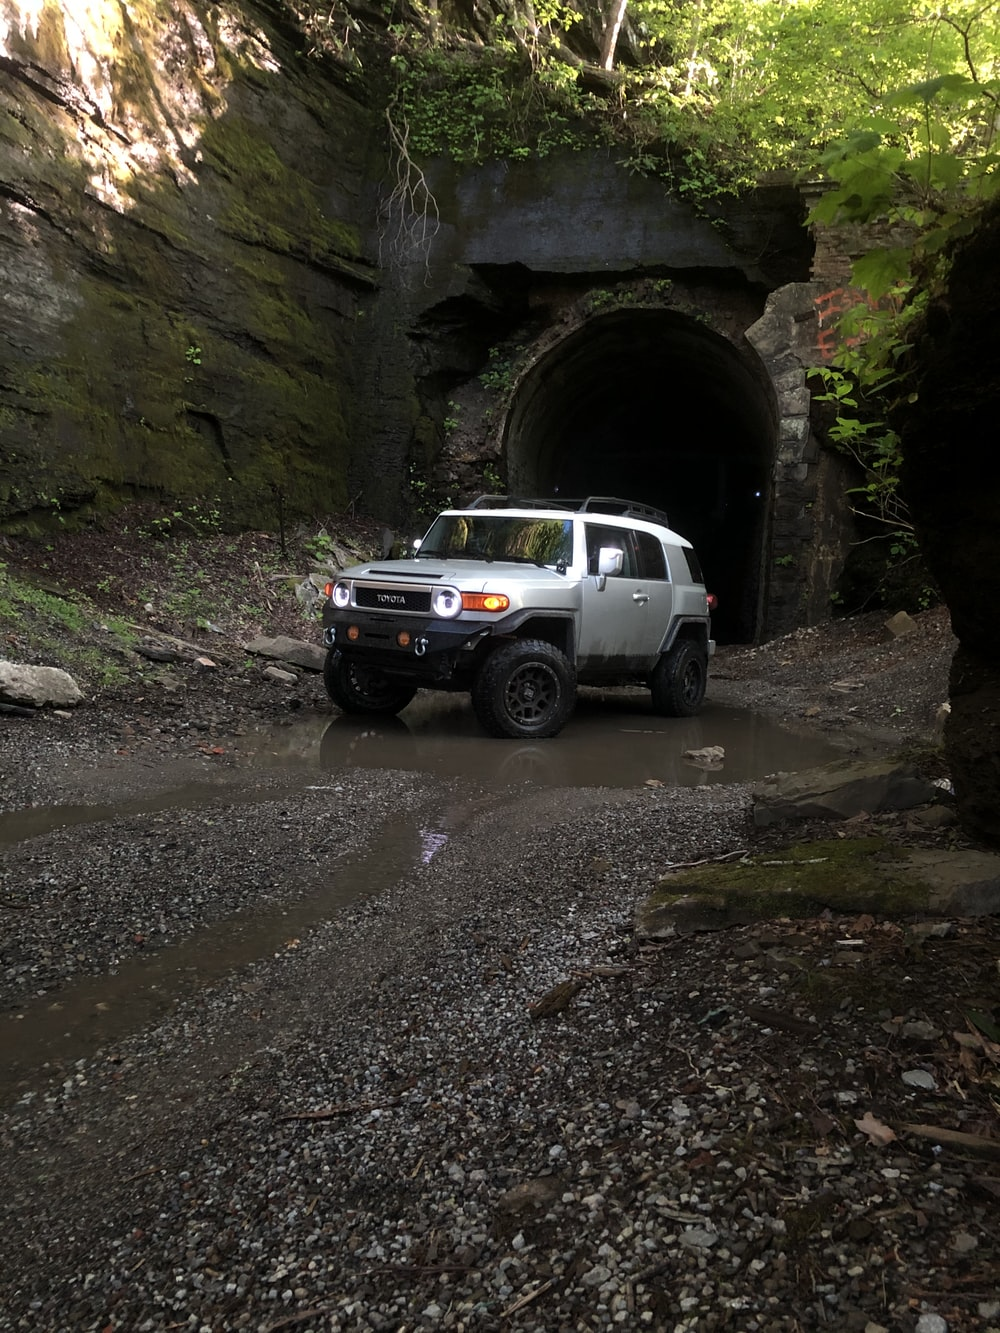 white suv parked near gray rock formation during daytime